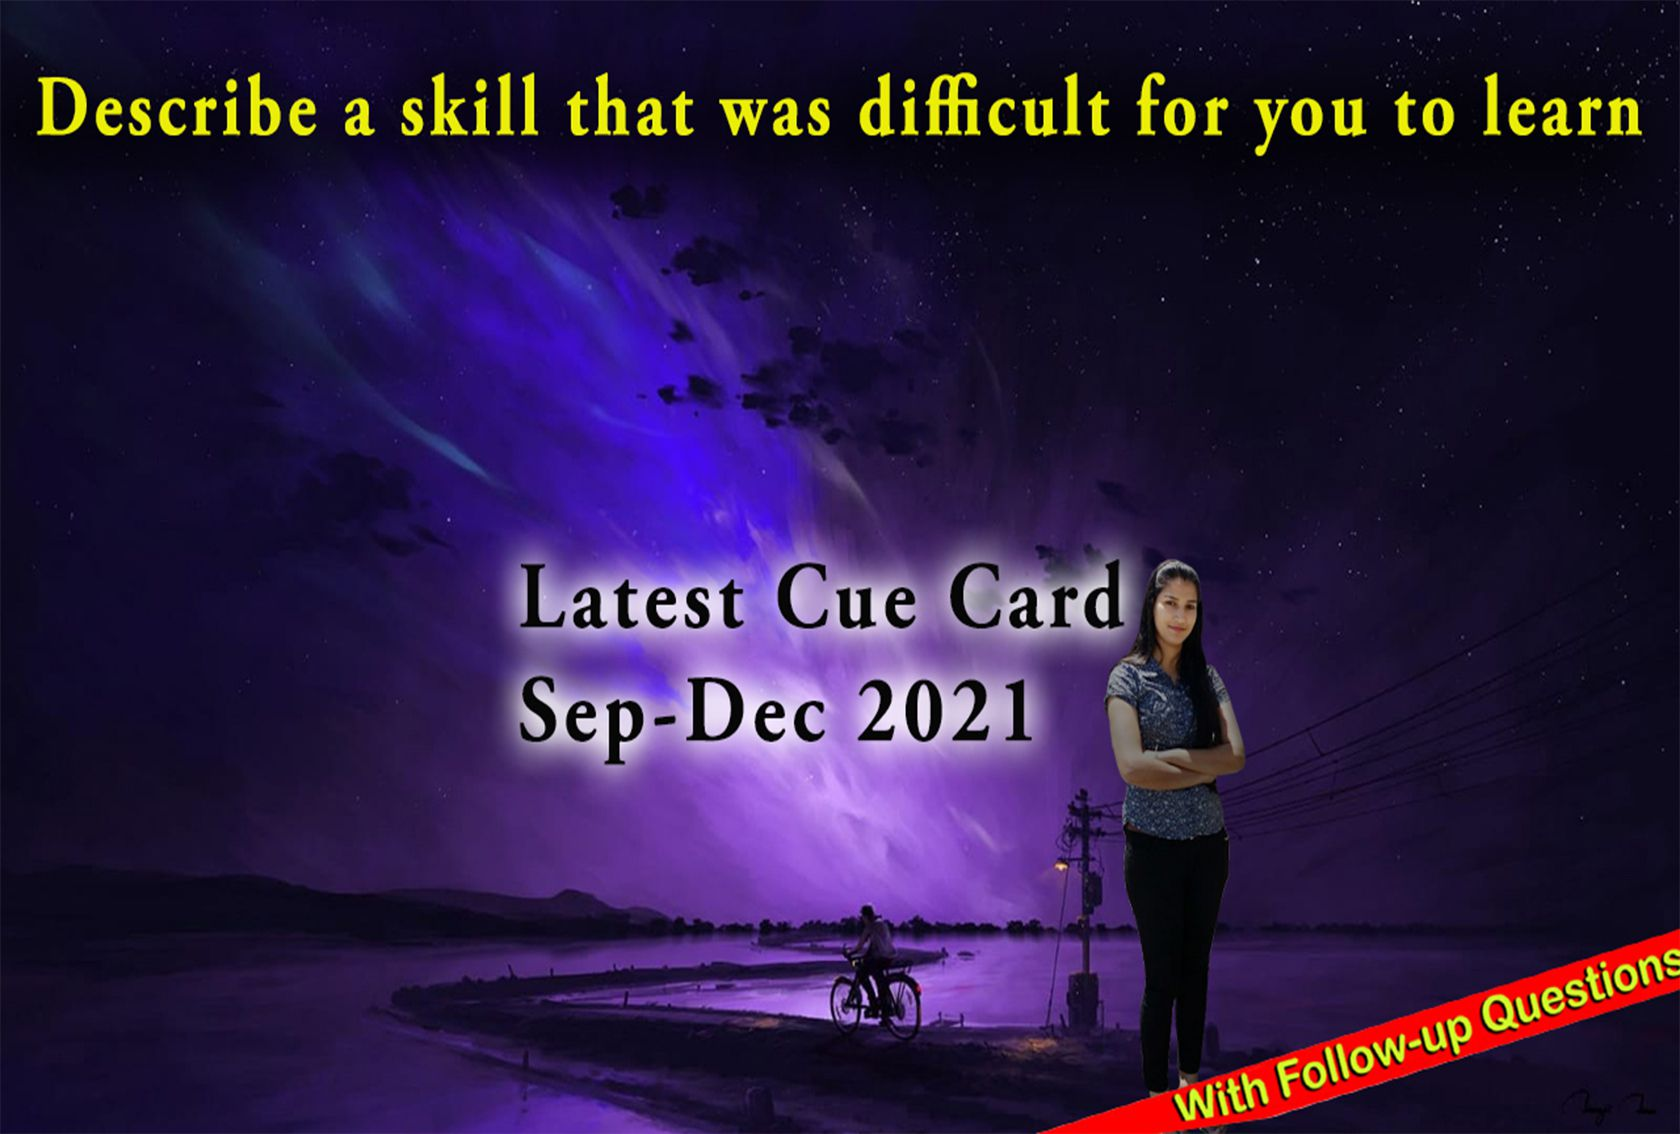 Describe a skill that was difficult for you to learn